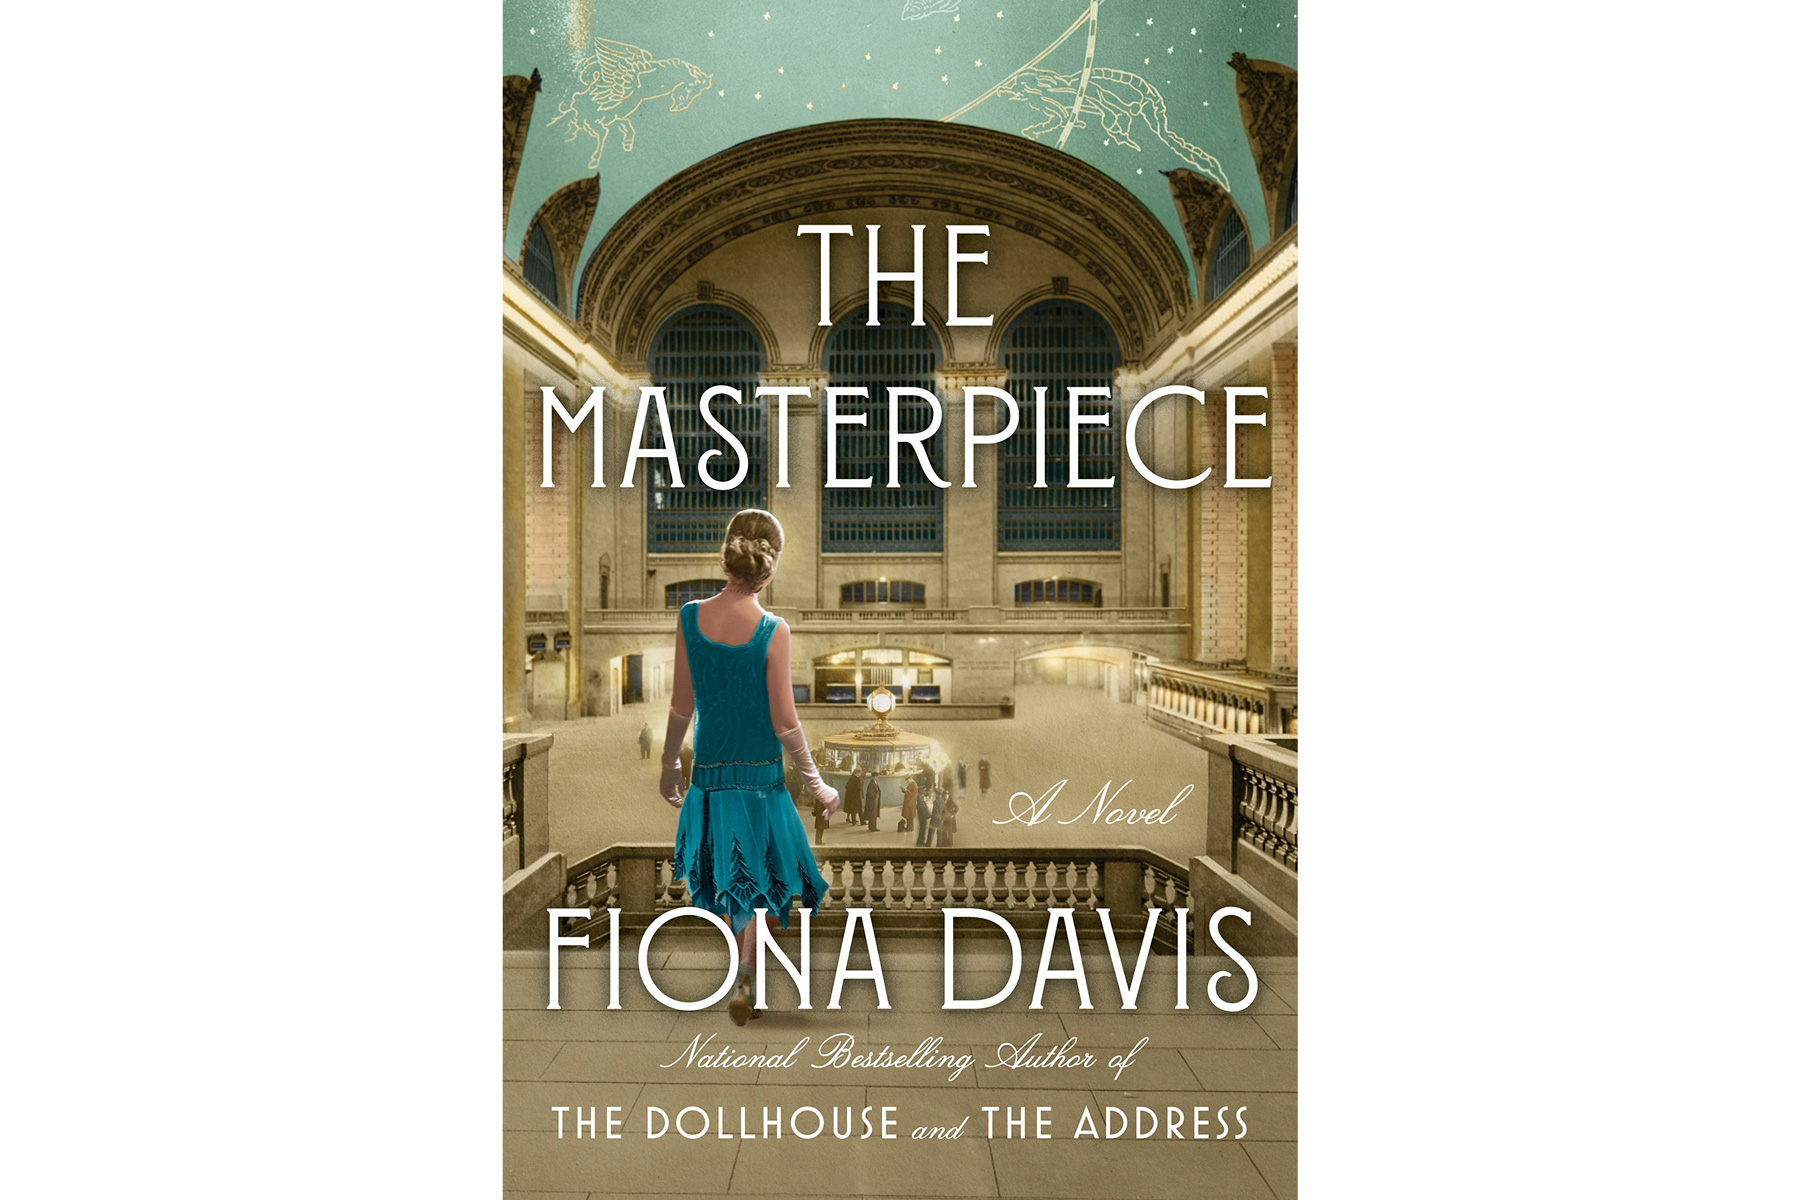 The Masterpiece, by Fiona Davis